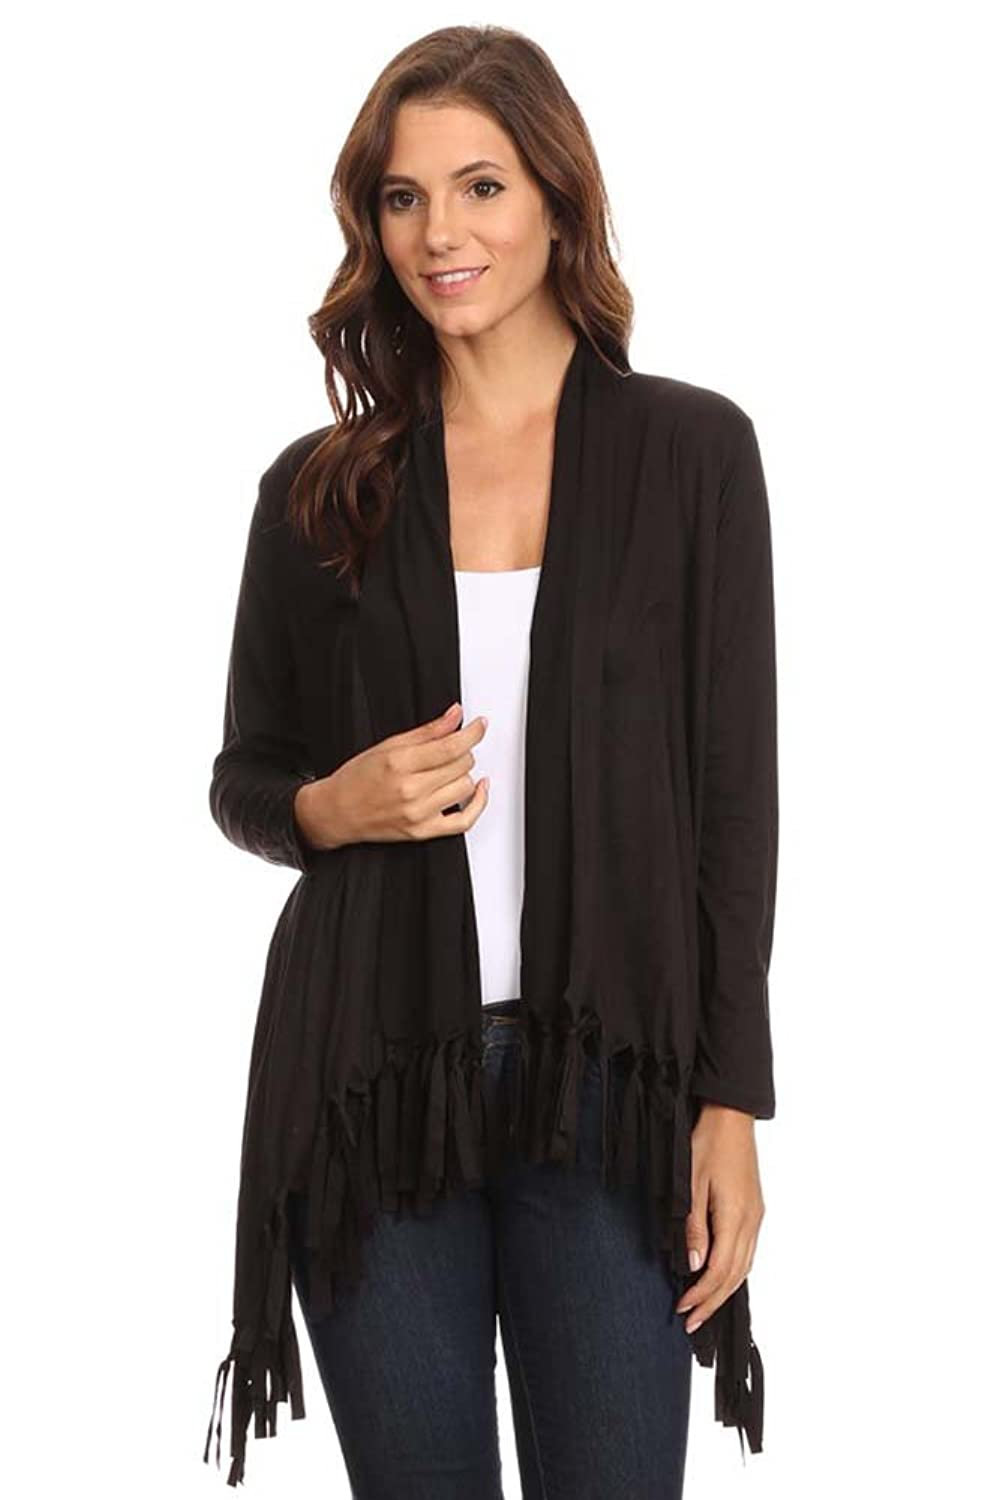 BLVD Women's Asymmetric Hem Loose Fit tyle Open Front Caridgan with Fringes